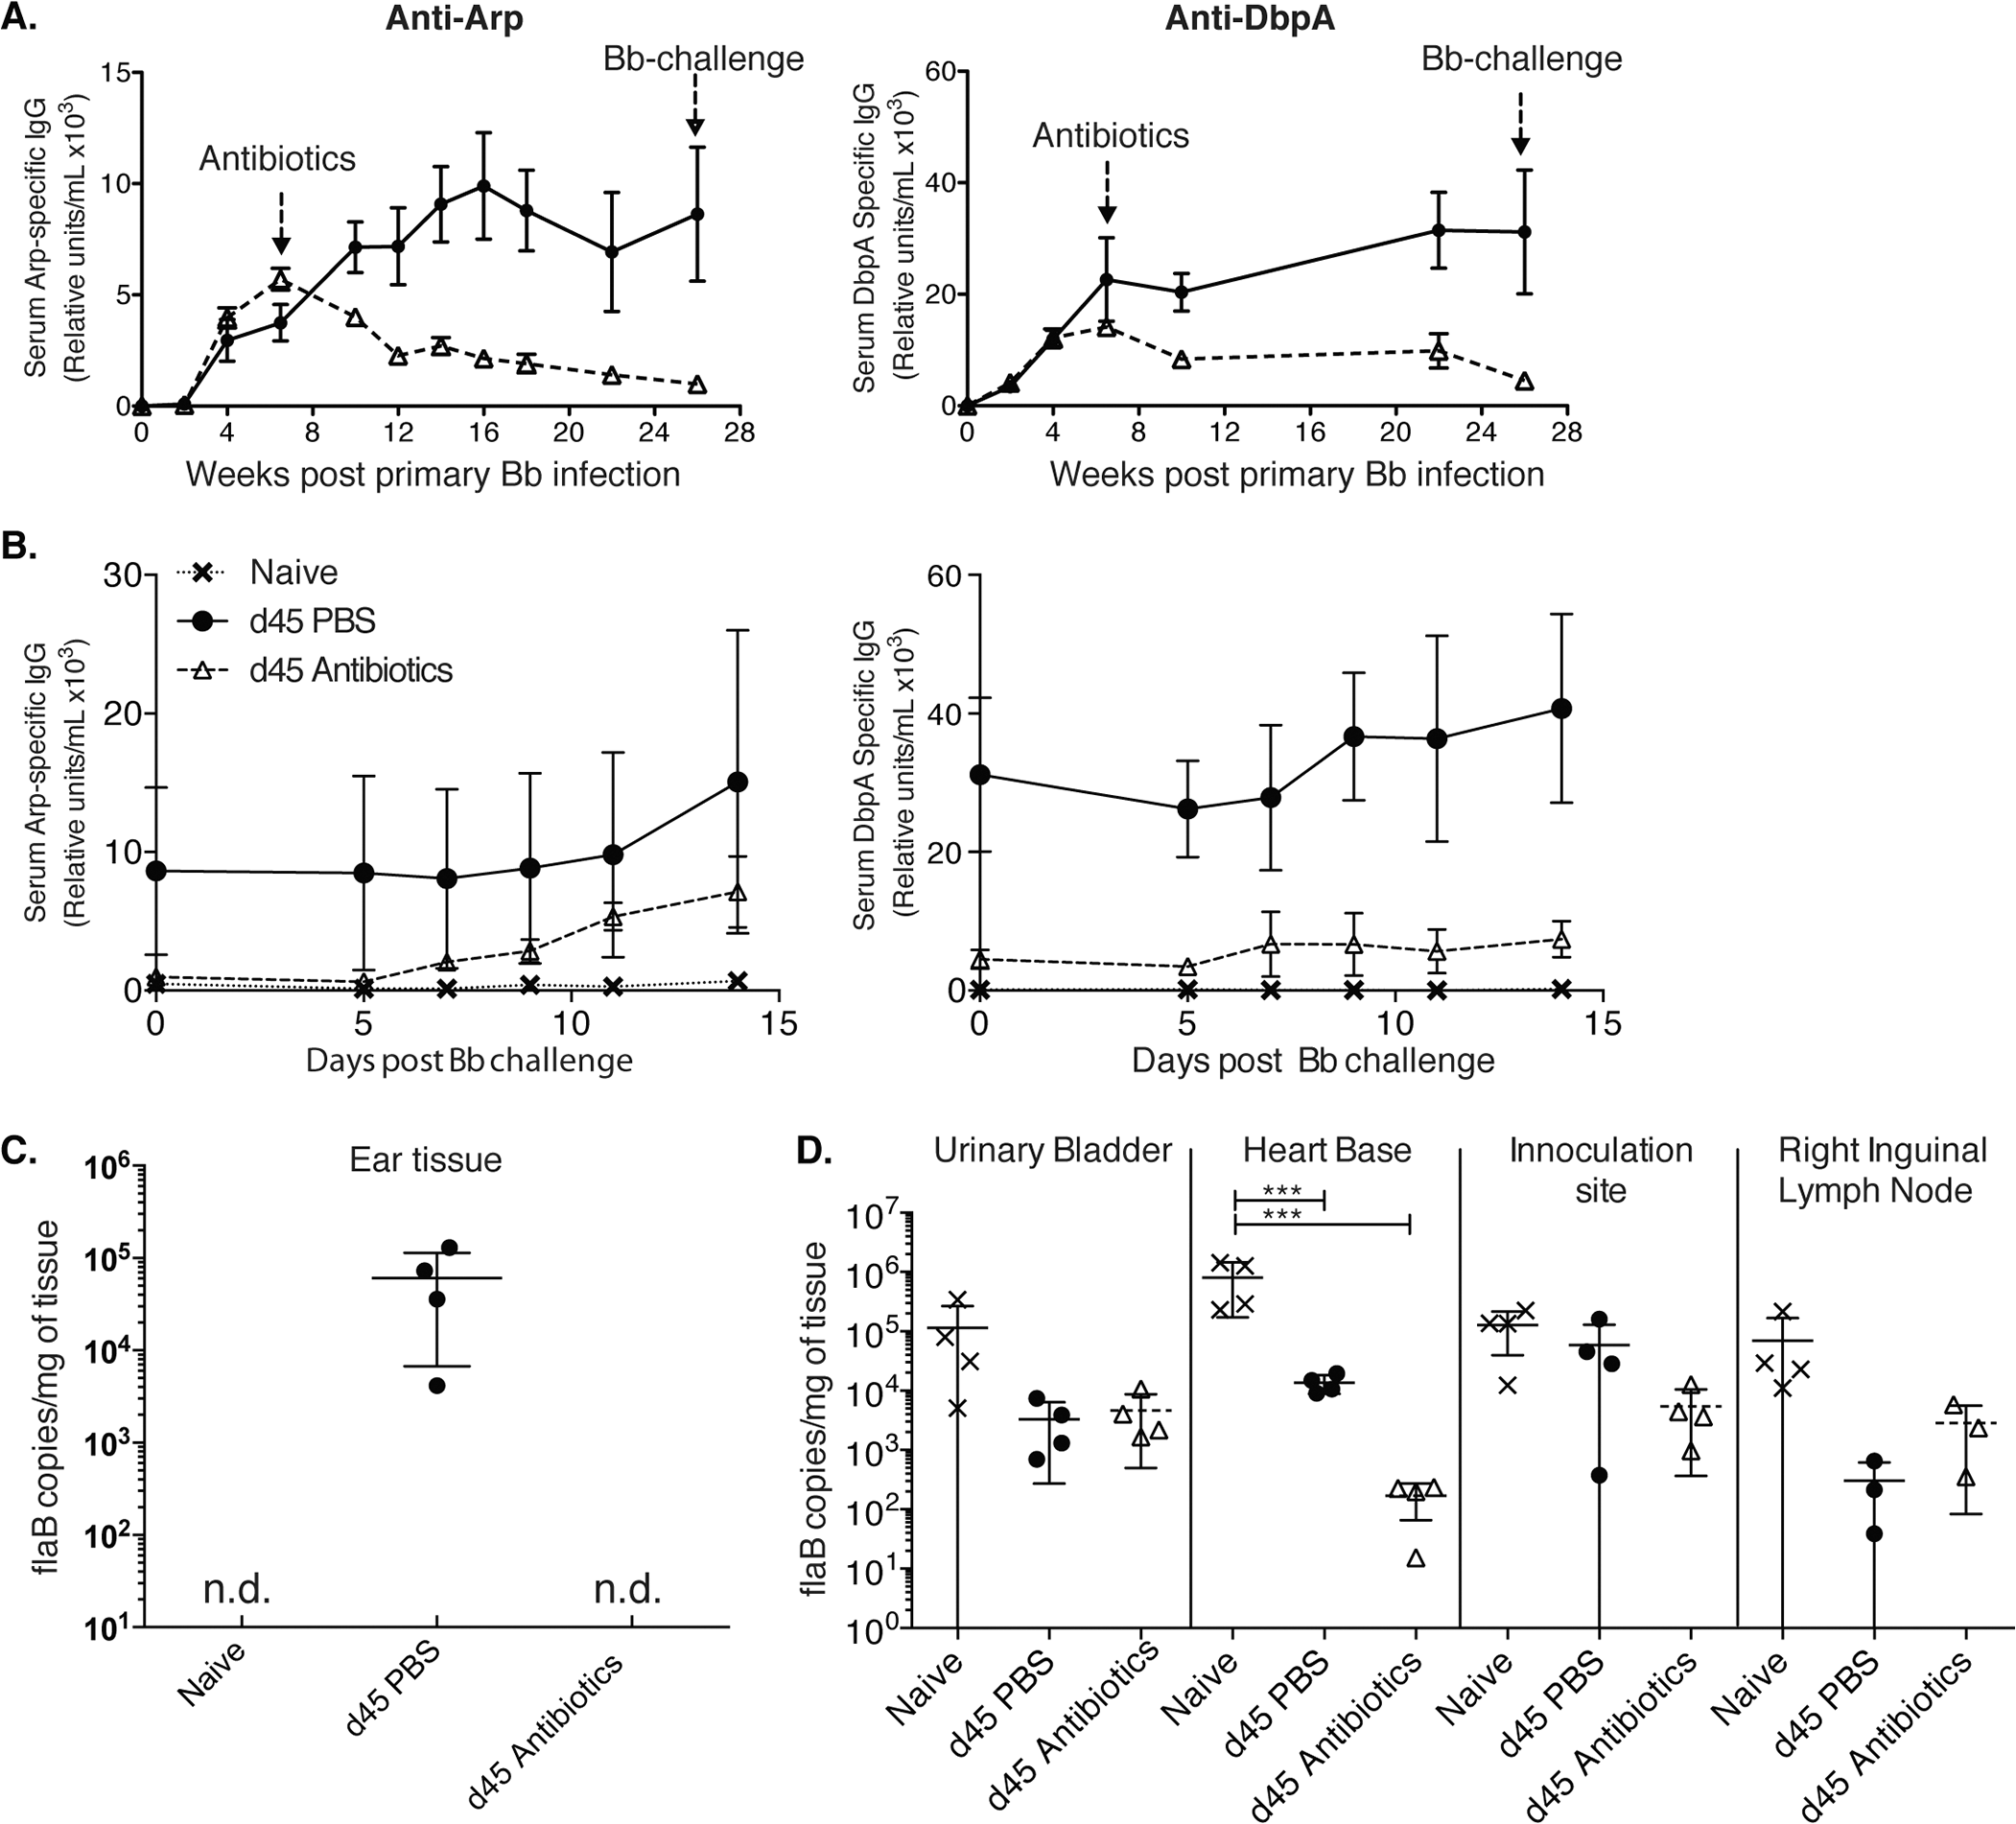 Lack of long-lived antibody responses after Bb infection (A-B)